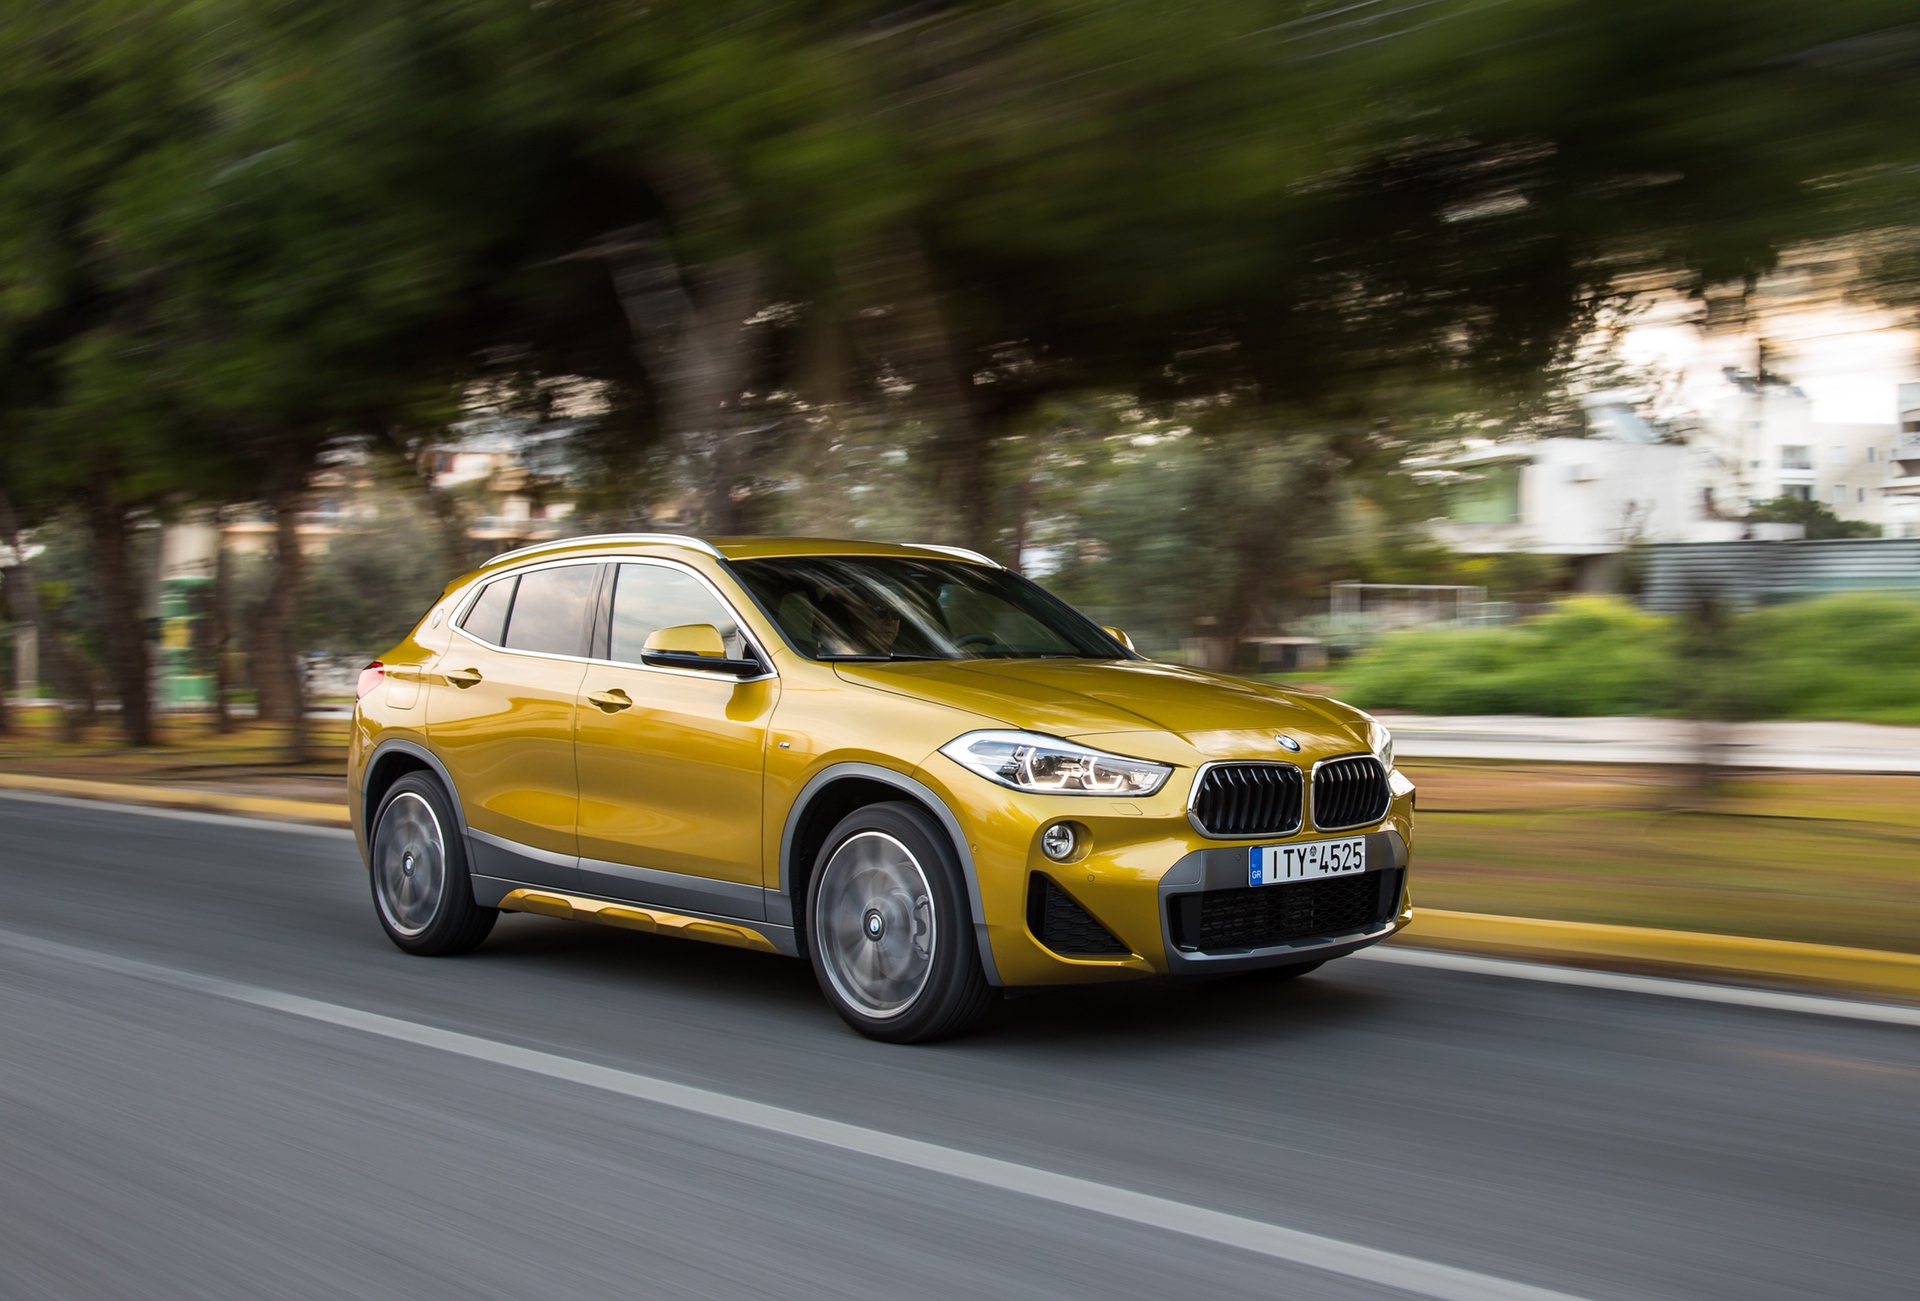 BMW_X2_Greek_presskit_0111